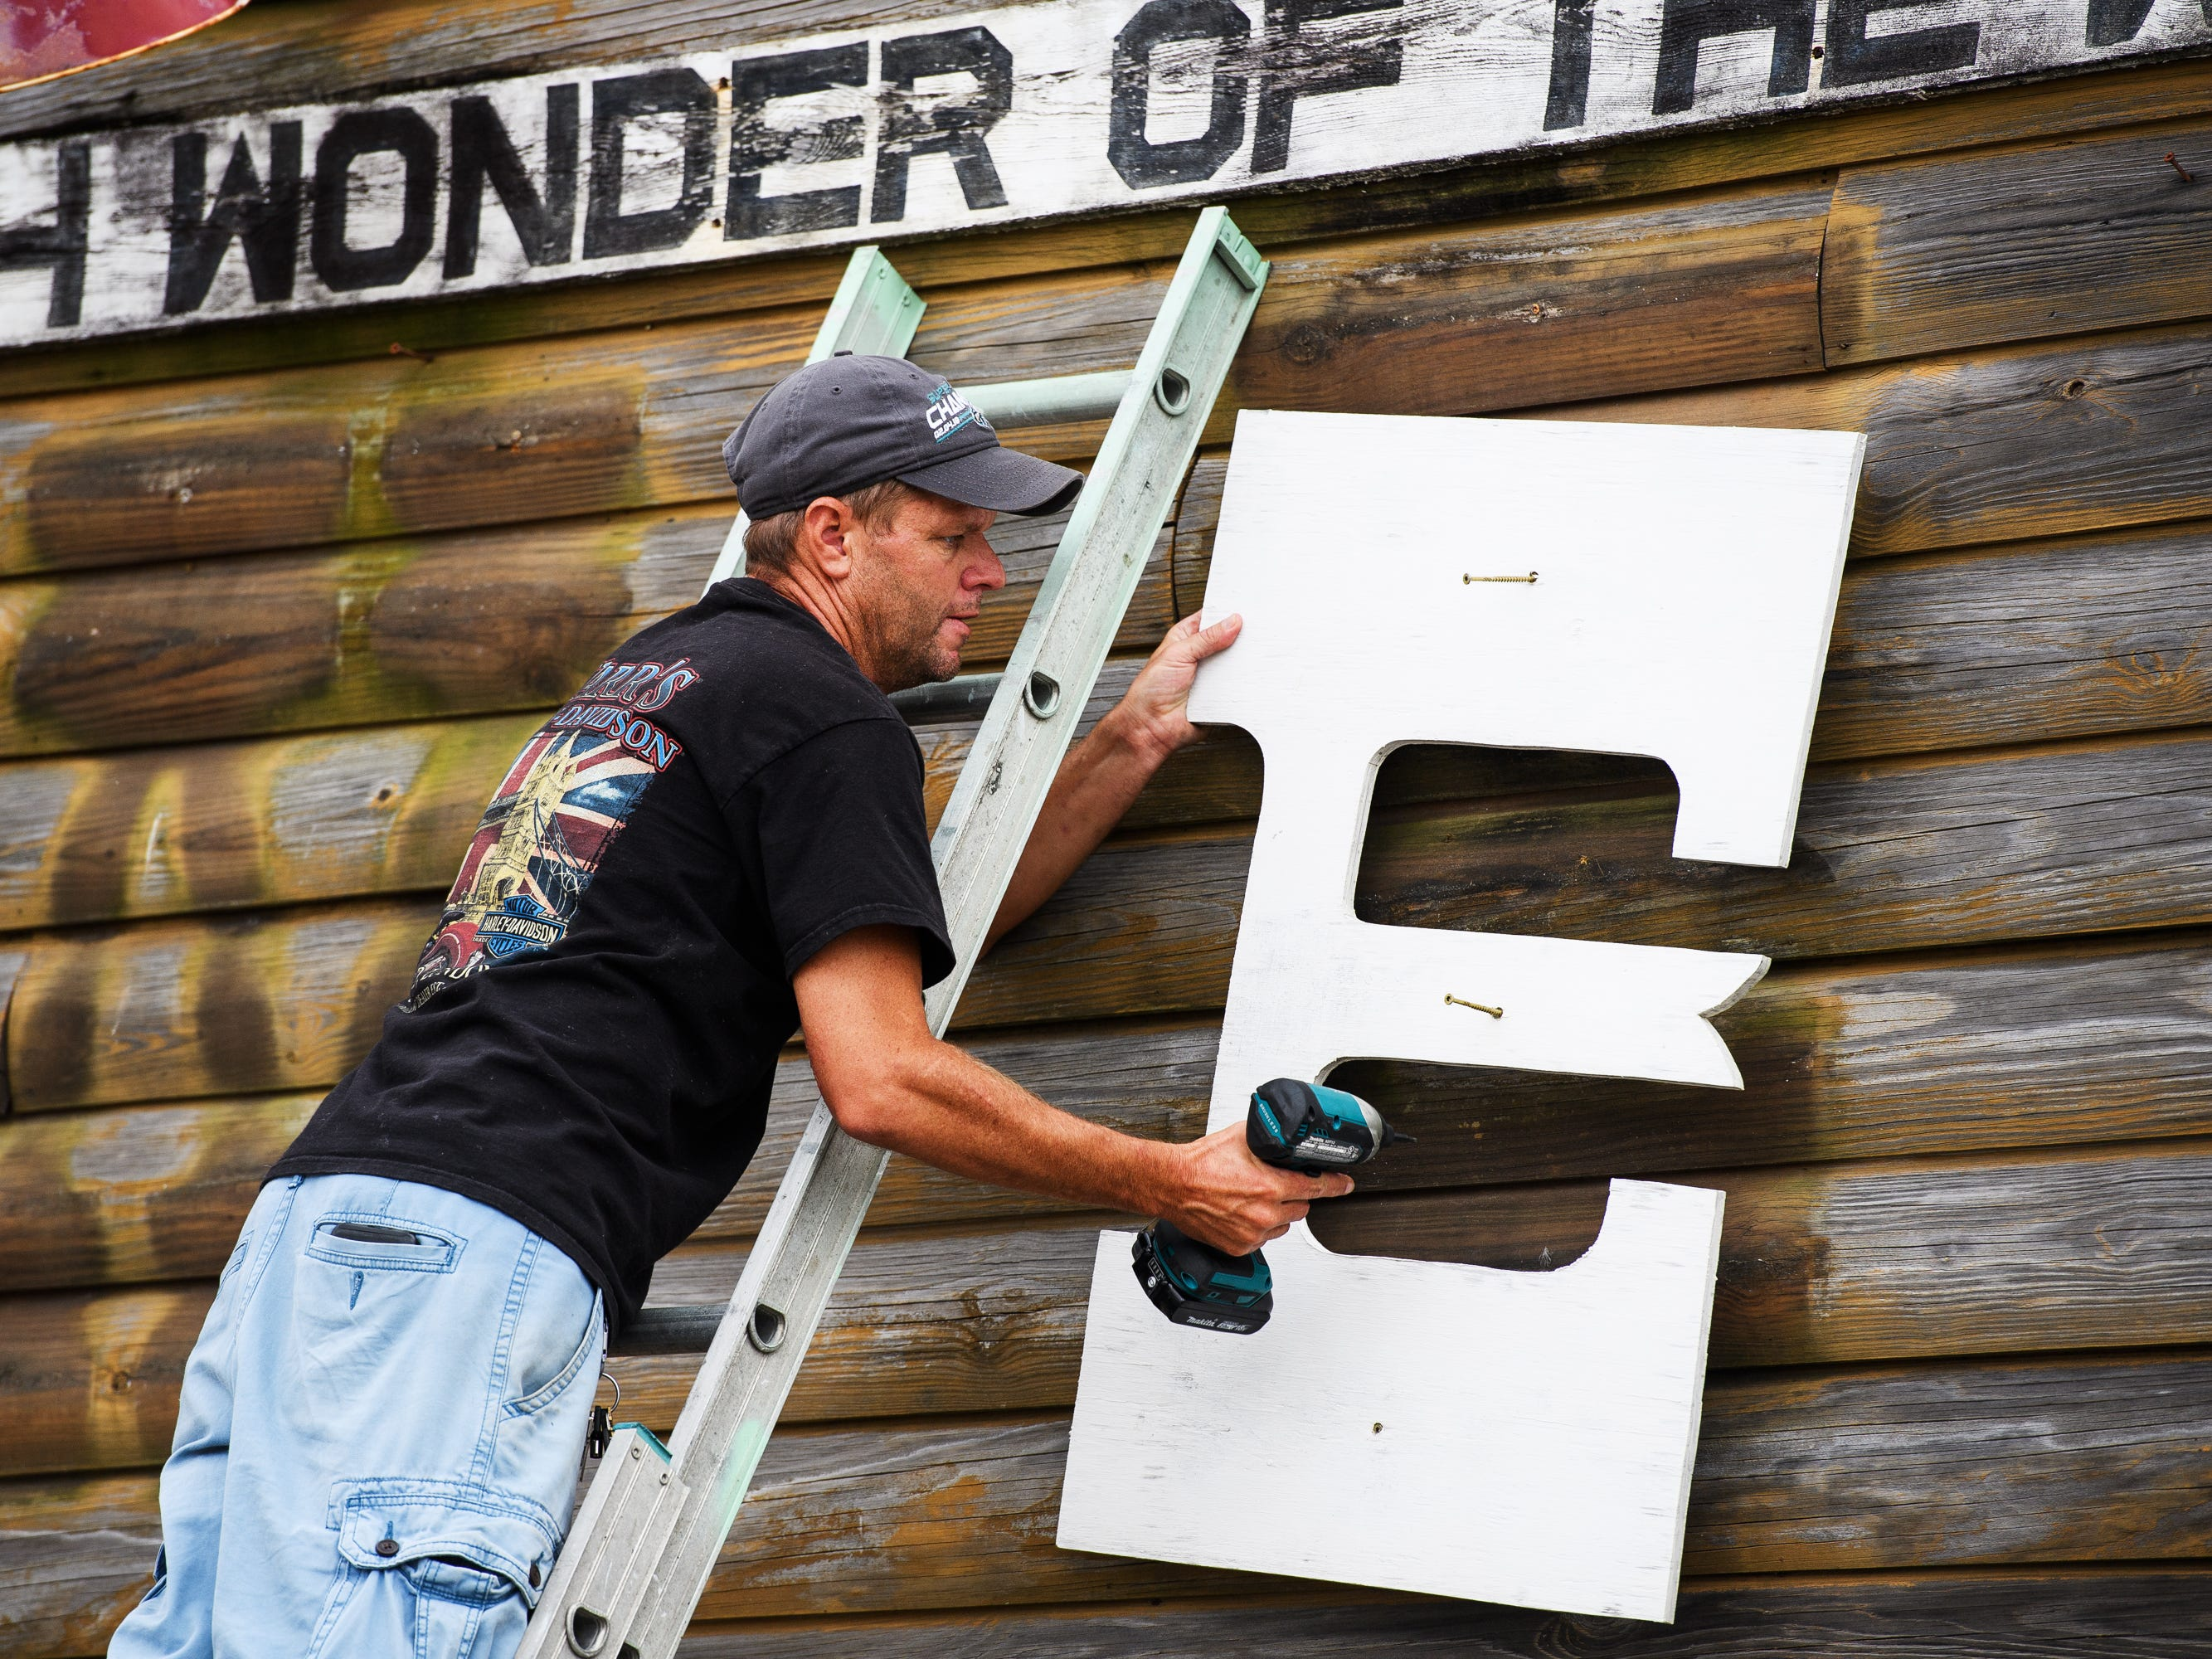 Pete Bissell takes the letters off the sign at the Bowery at the Myrtle Beach Boardwalk and Promenade on Thursday, Sept. 13, 2018.